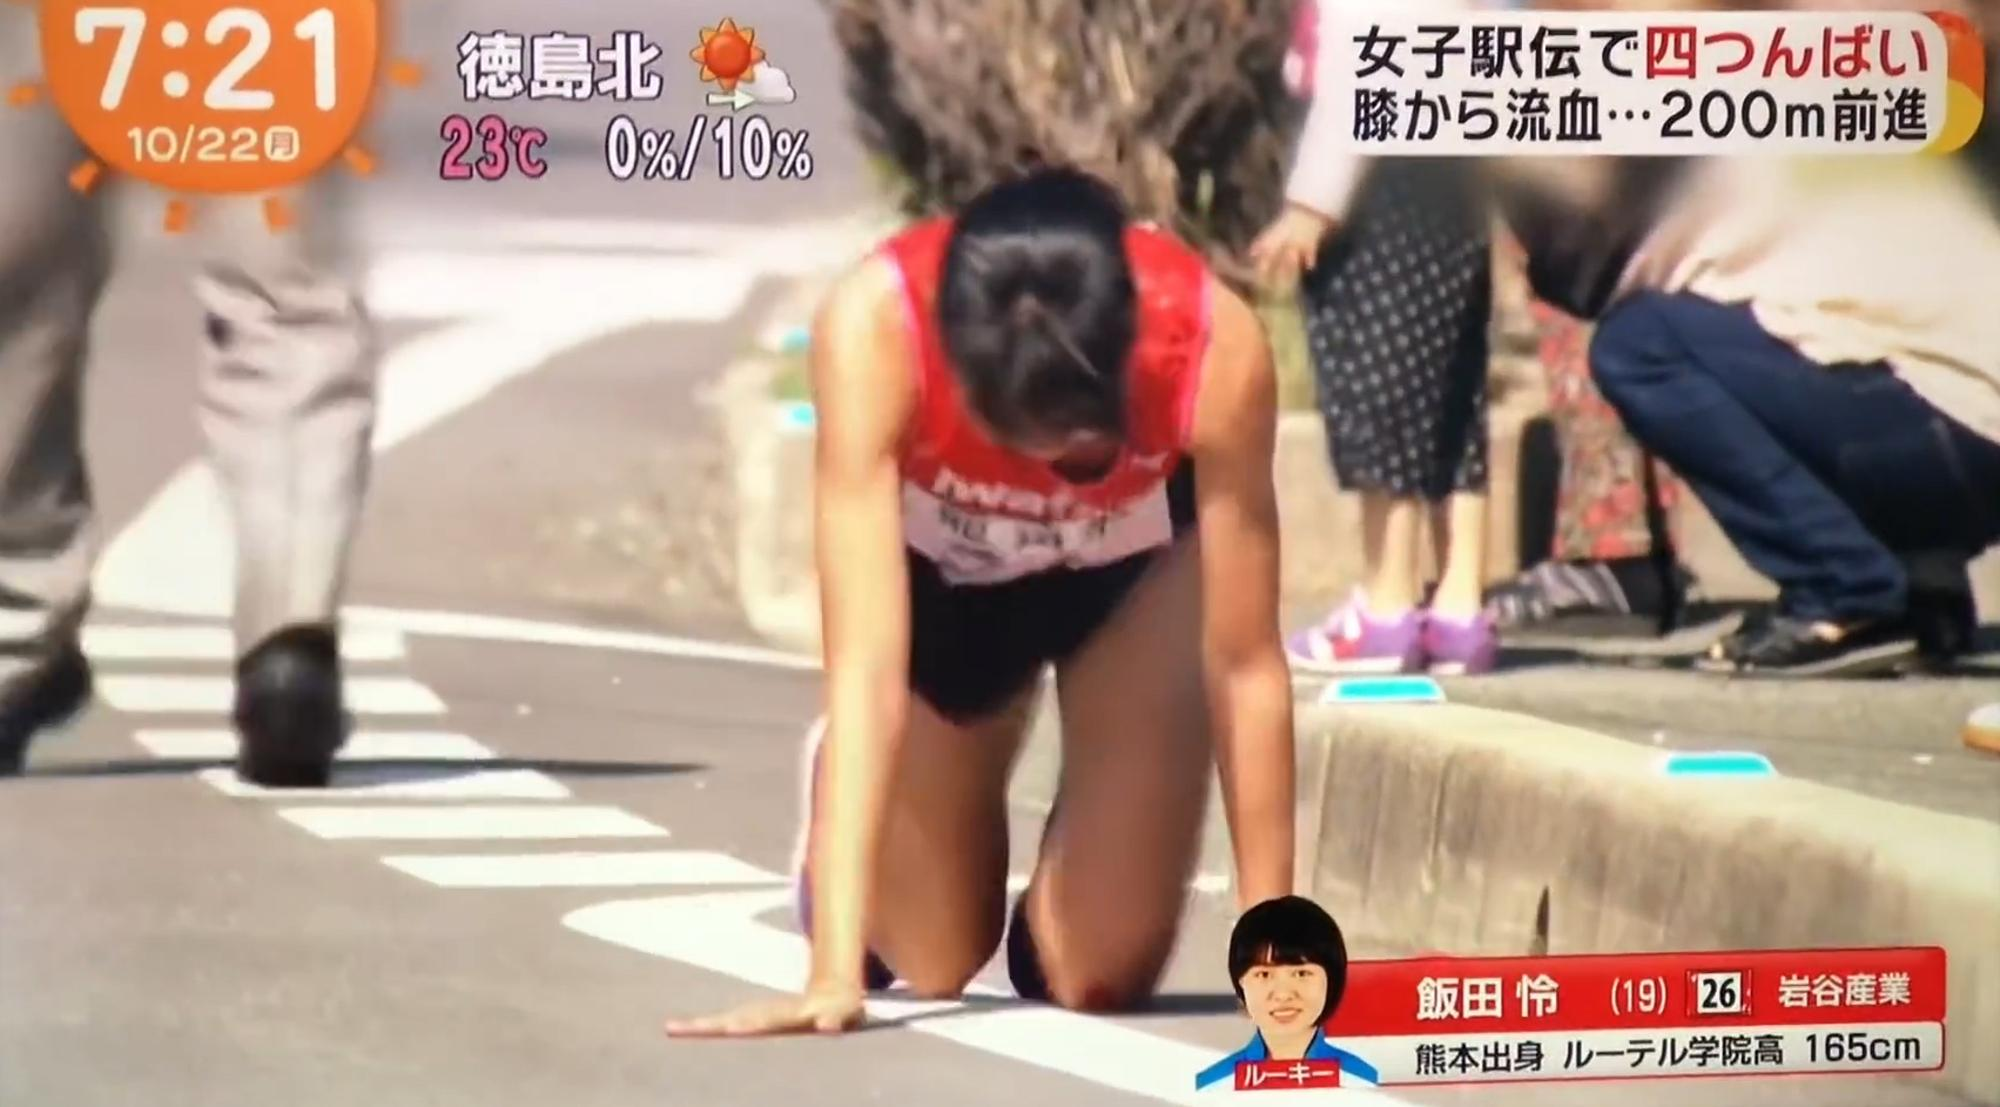 A Japanese runner broke her leg and crawled to the finish line this week